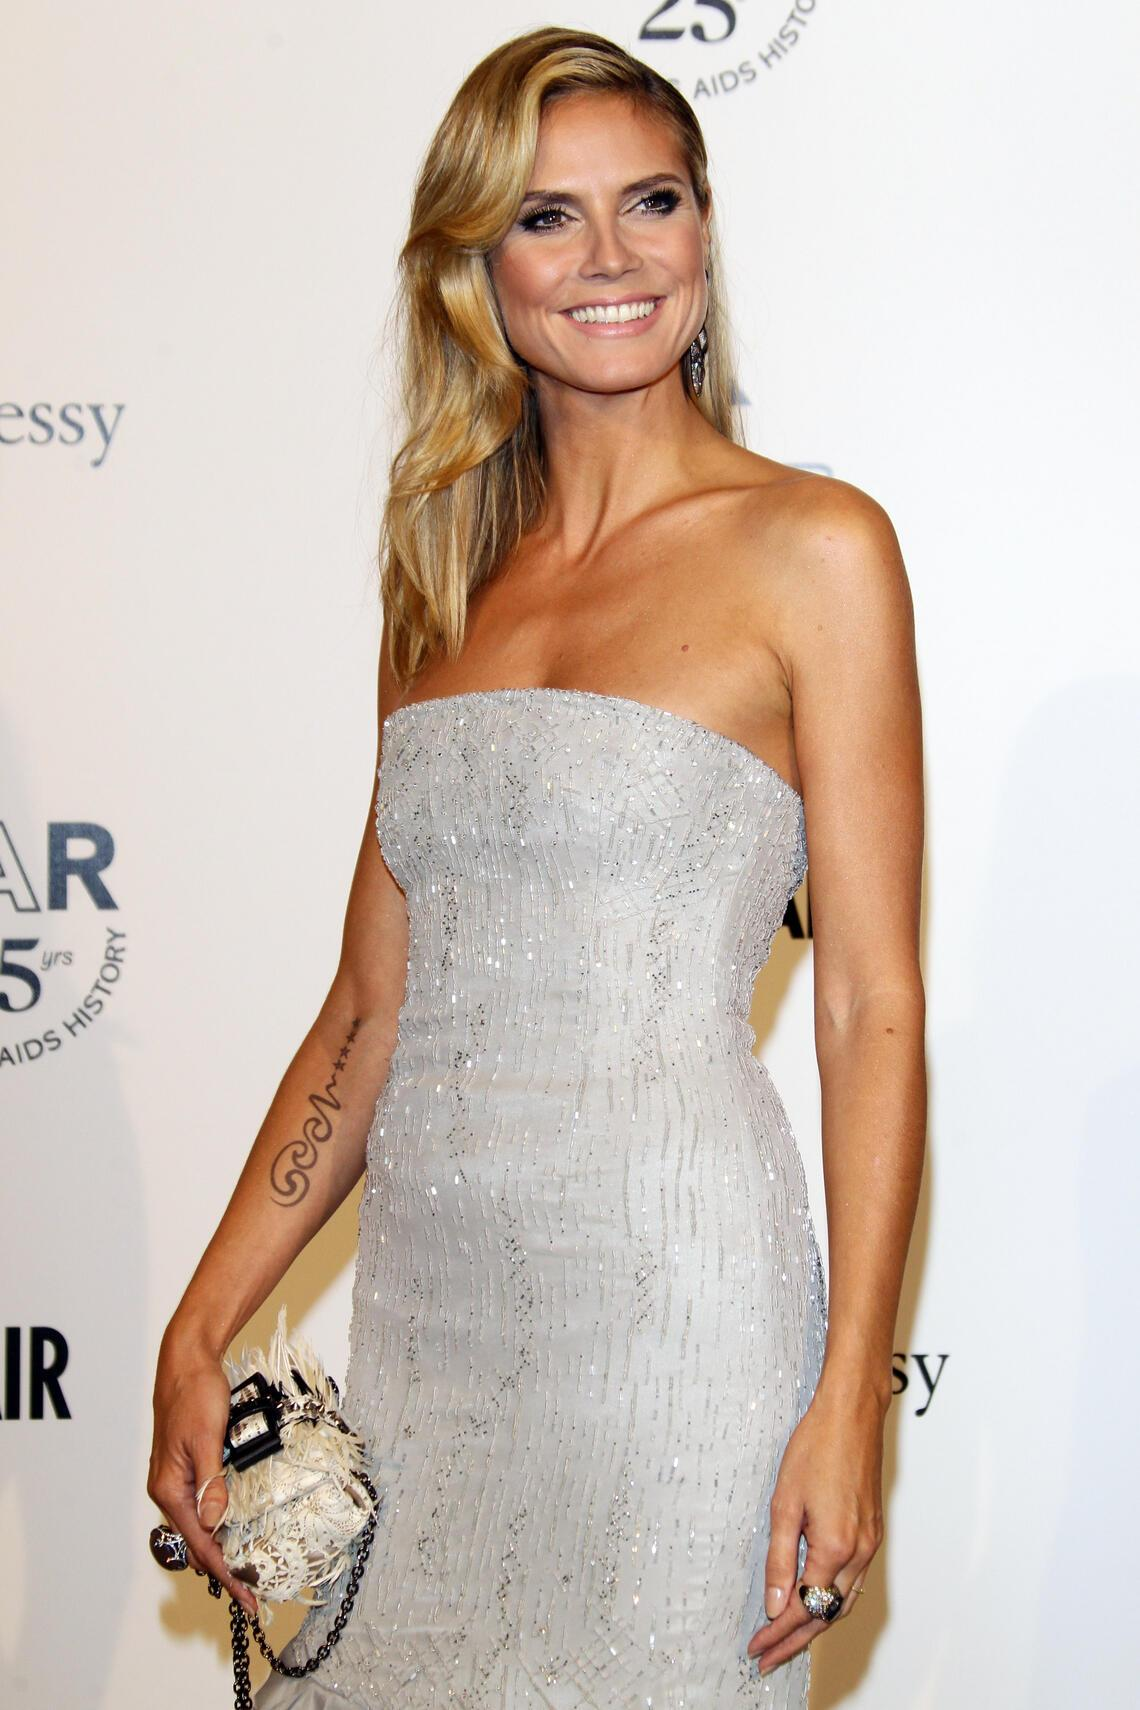 MILAN, ITALY - SEPTEMBER 23:  Model Heidi Klum attends amfAR MILANO 2011 at La Permanente on September 23, 2011 in Milan, Italy.  (Photo by Vittorio Zunino Celotto/Getty Images for amfAR)